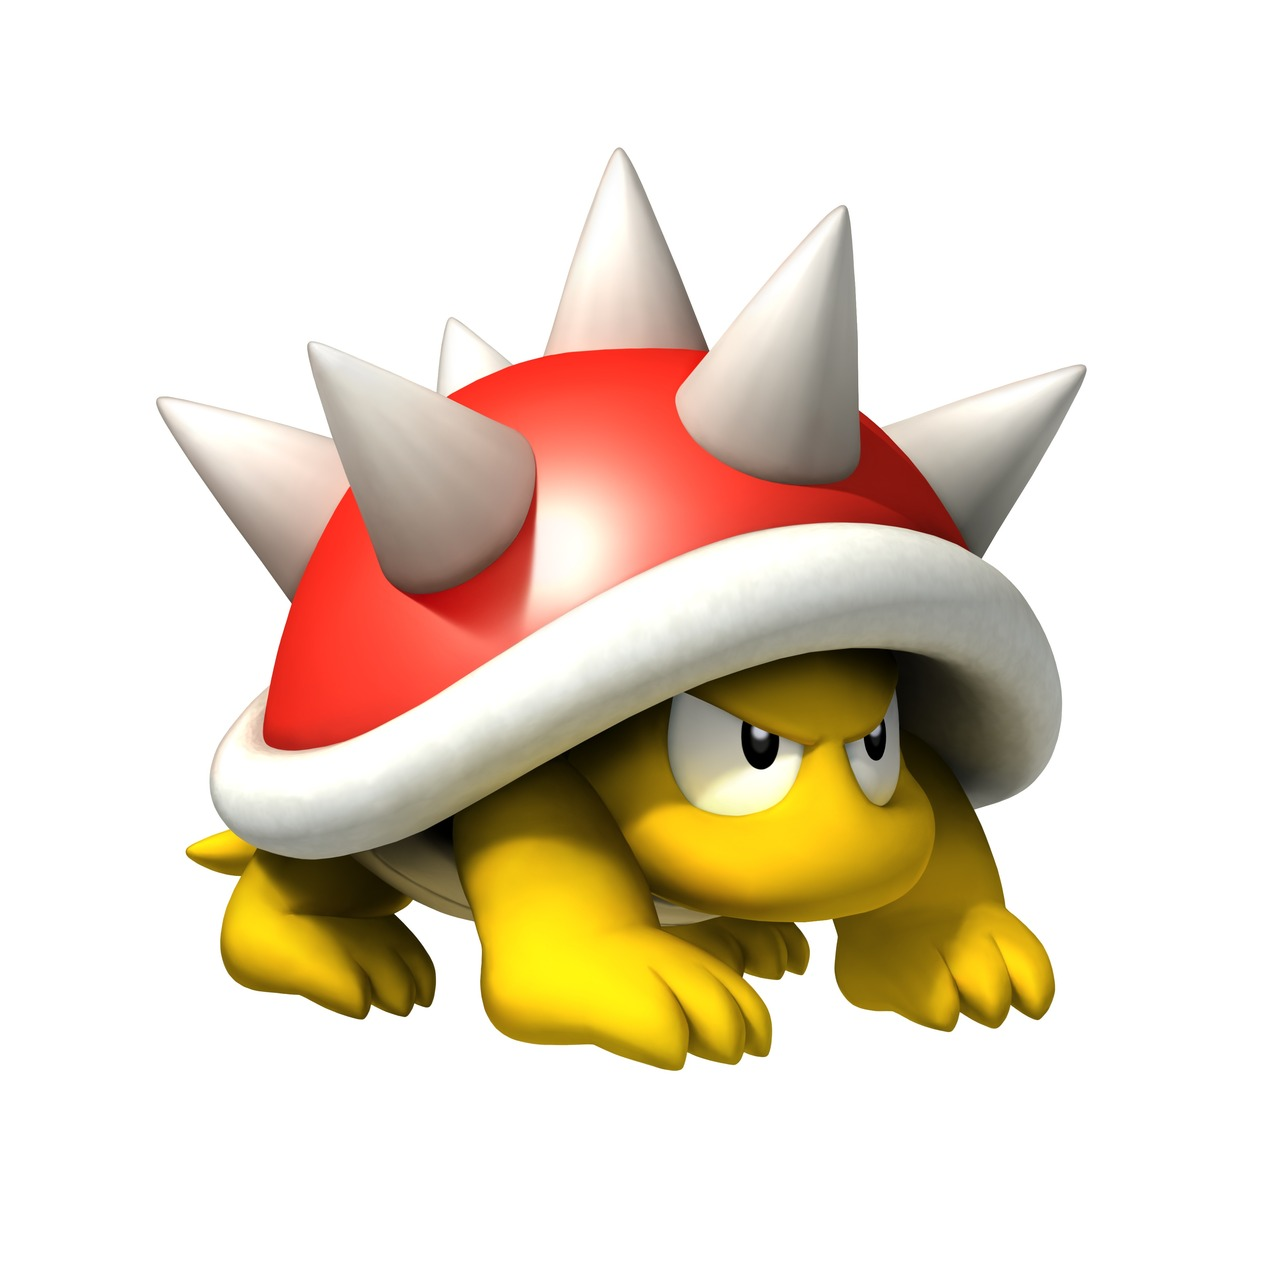 Super Mario 3d Hd Wallpaper New Super Mario Bros Wii Wallpapers Games